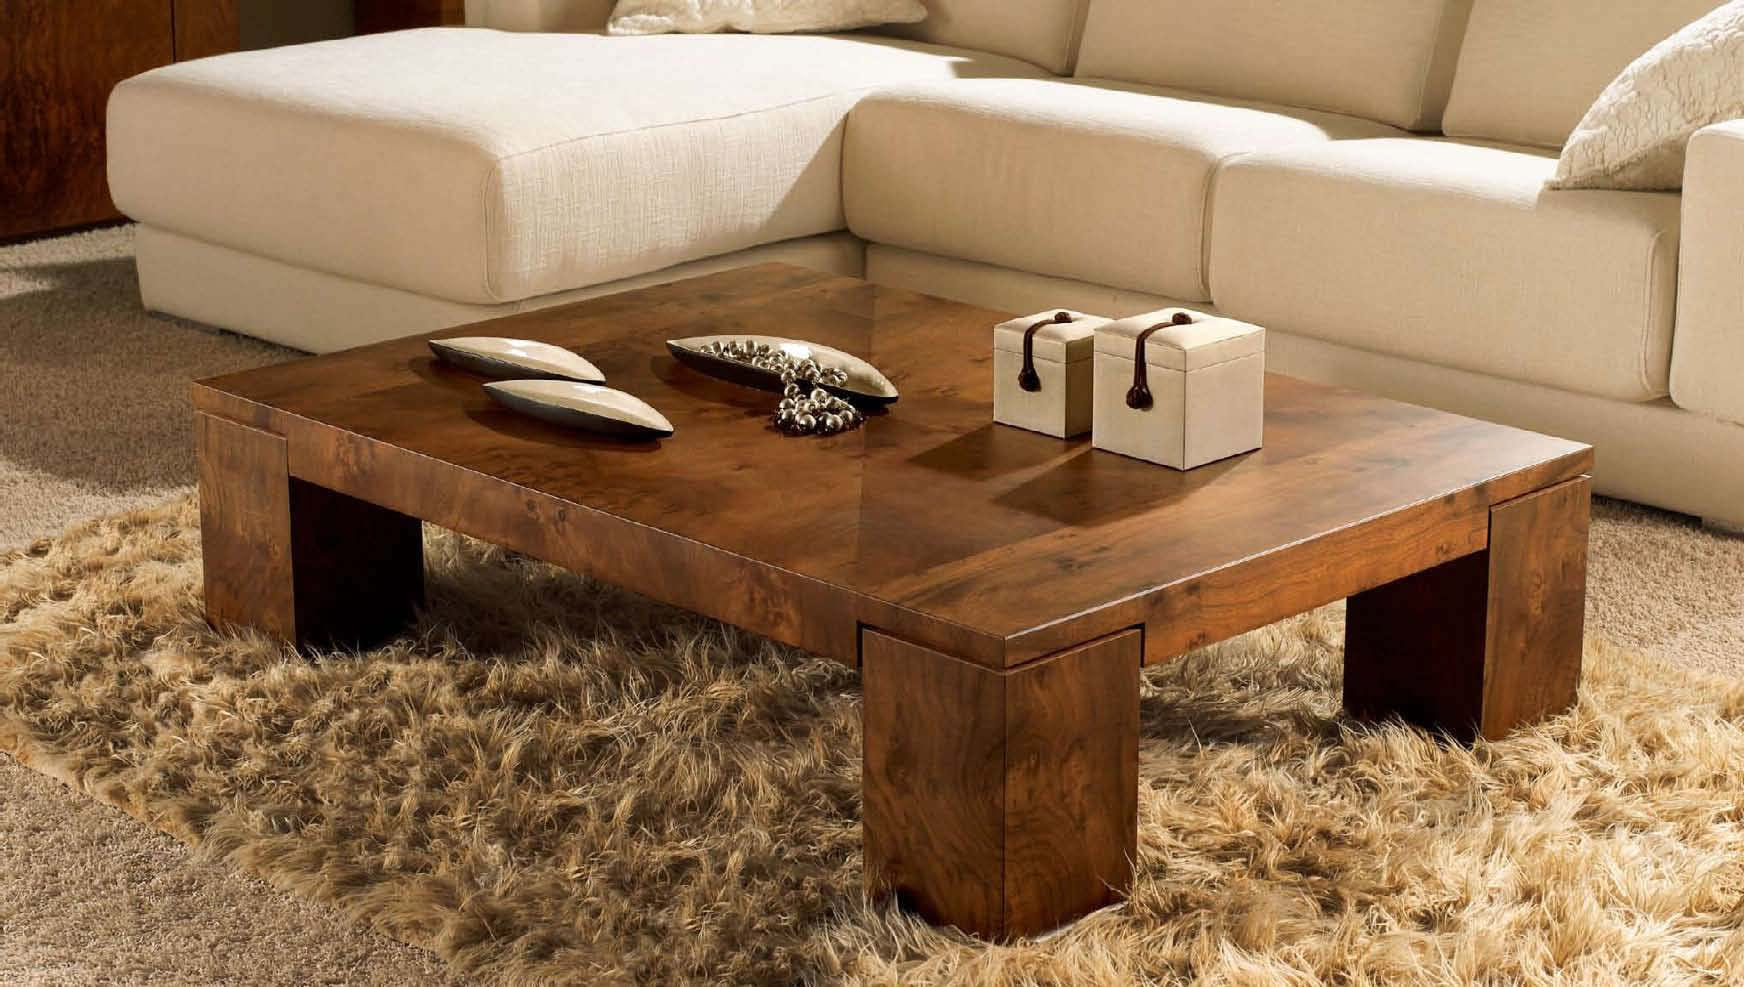 Fresh Cut Side Tables In Popular 22 Coffee Table Woodworking Projects Worth Trying – Cut The Wood (View 9 of 20)